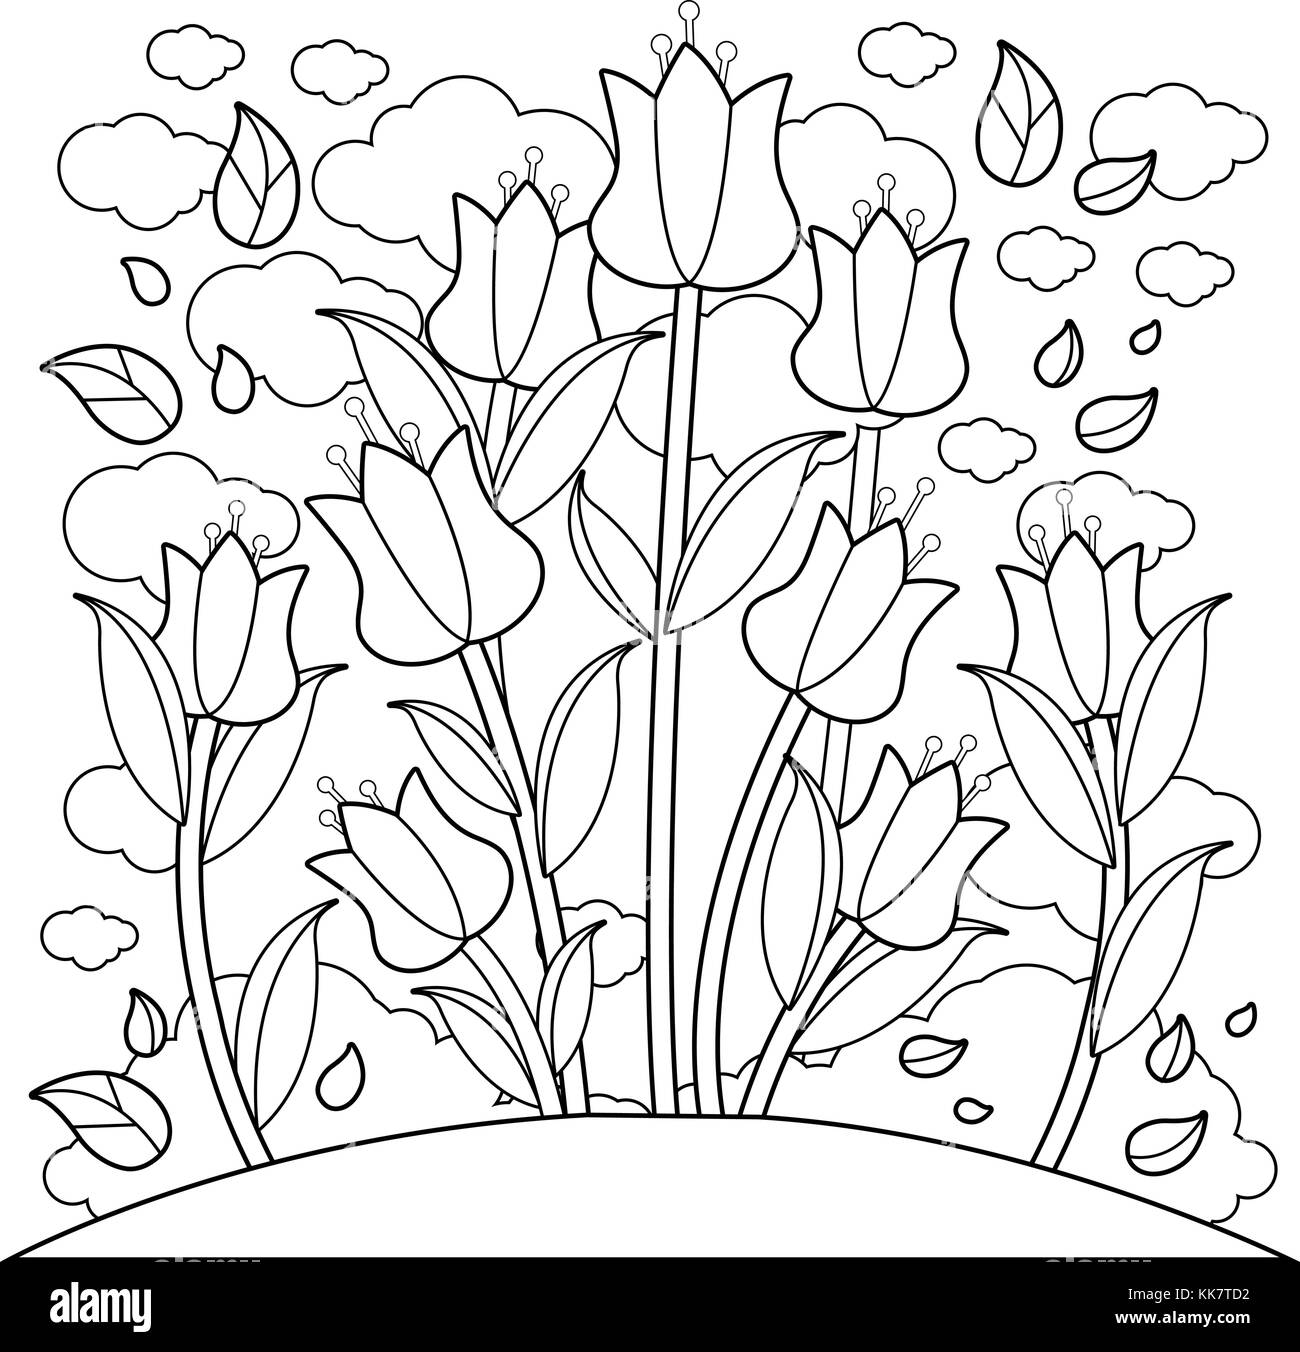 Meadow With Tulip Flowers Black And White Coloring Book Page Stock Vector Image Art Alamy